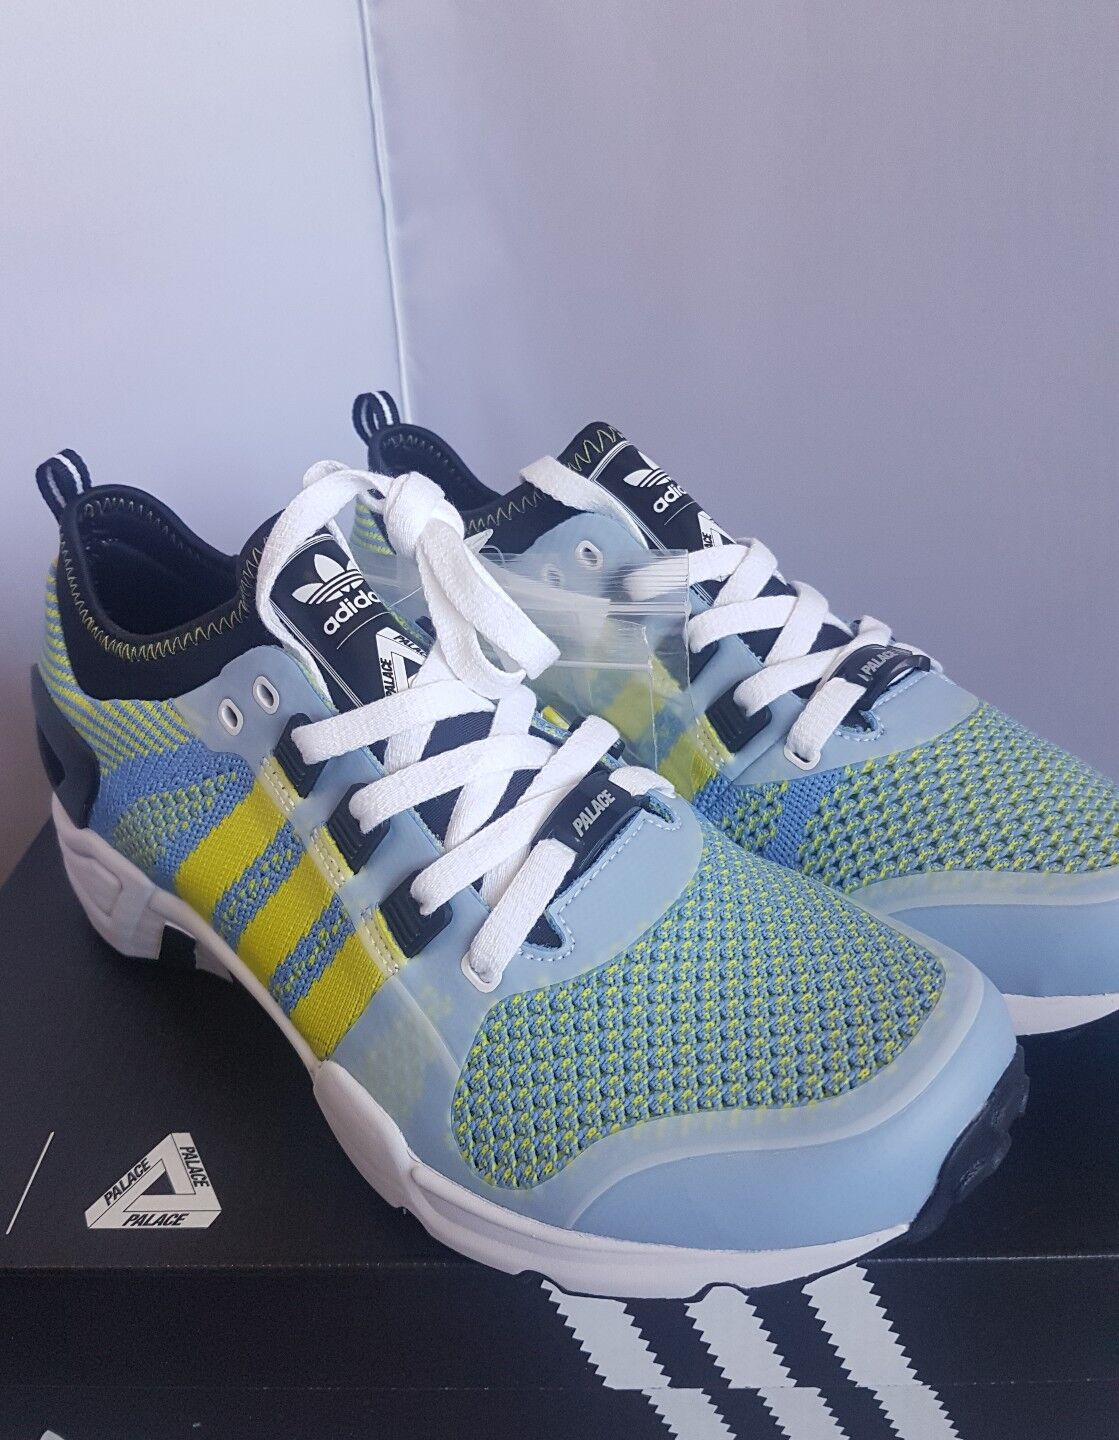 x BB3397 5 Sold At Adidas 7 Out 6 EQT US BB3397 6 5 Palace Out aBdPnpXa